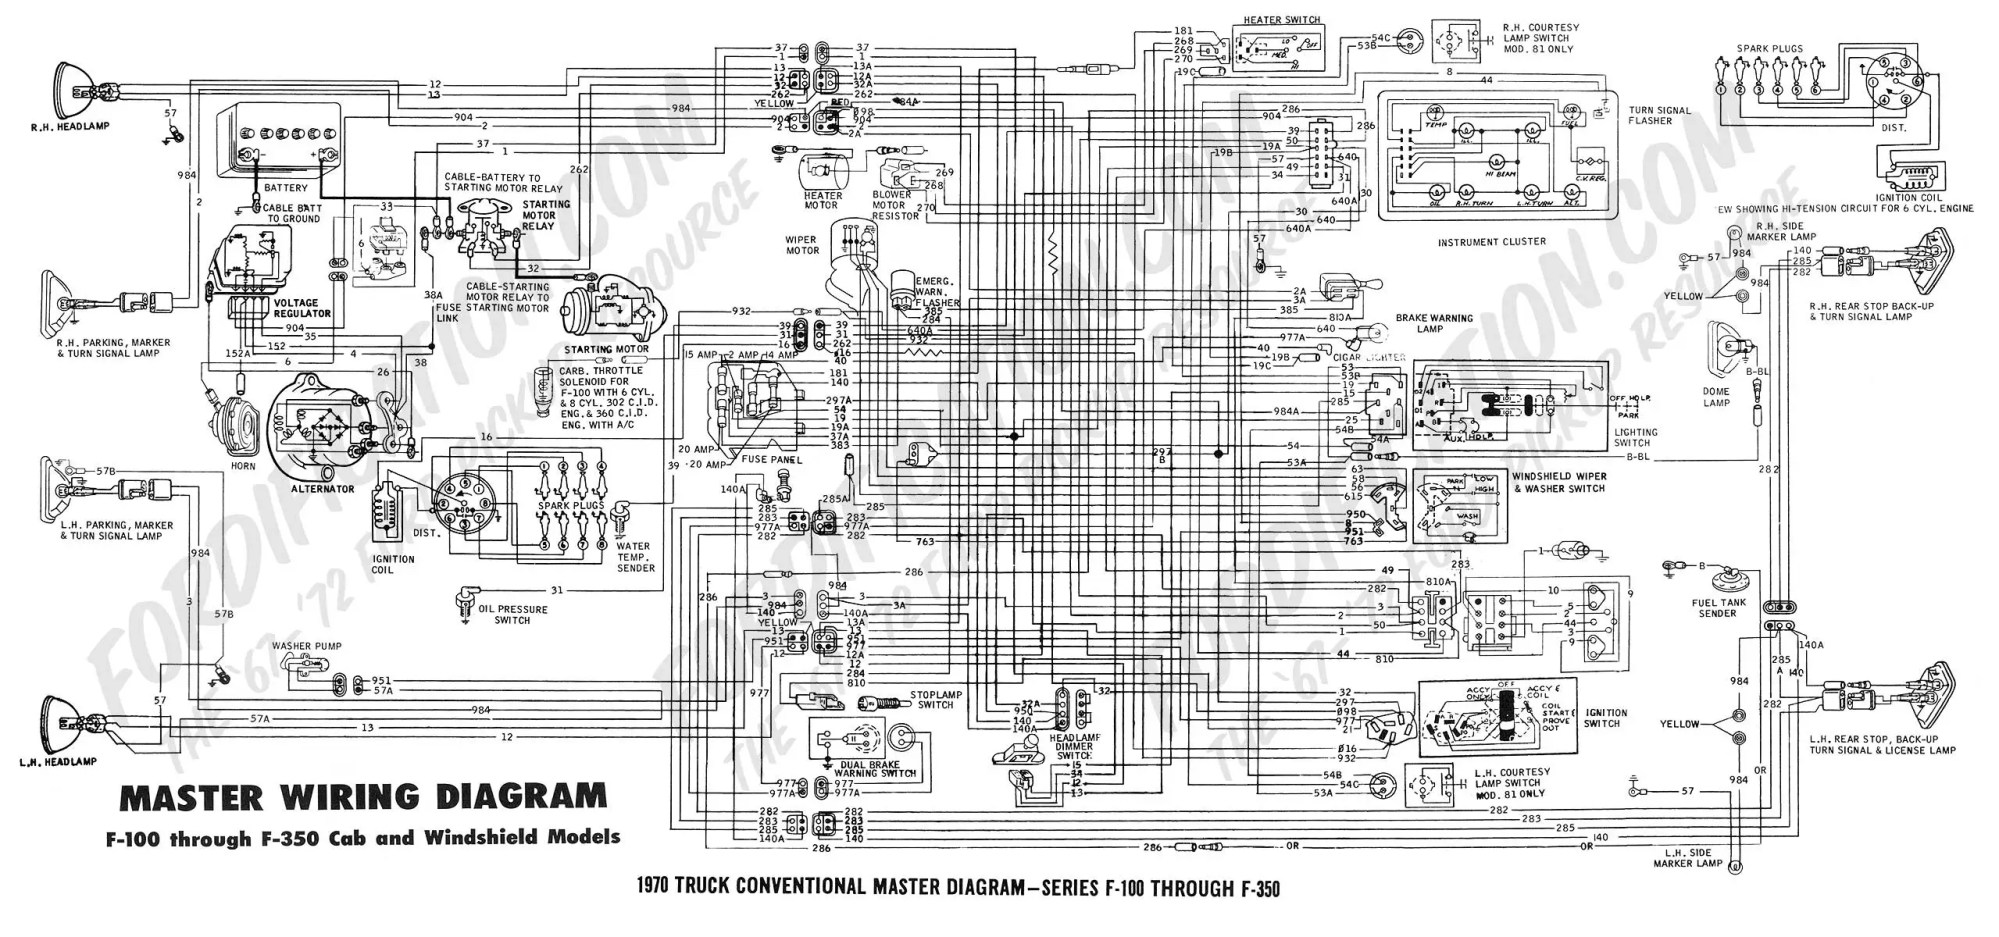 hight resolution of 2003 ford f250 wiring diagram wiring diagram fascinating 2003 ford f250 trailer wiring harness diagram 2003 ford f250 wiring diagram